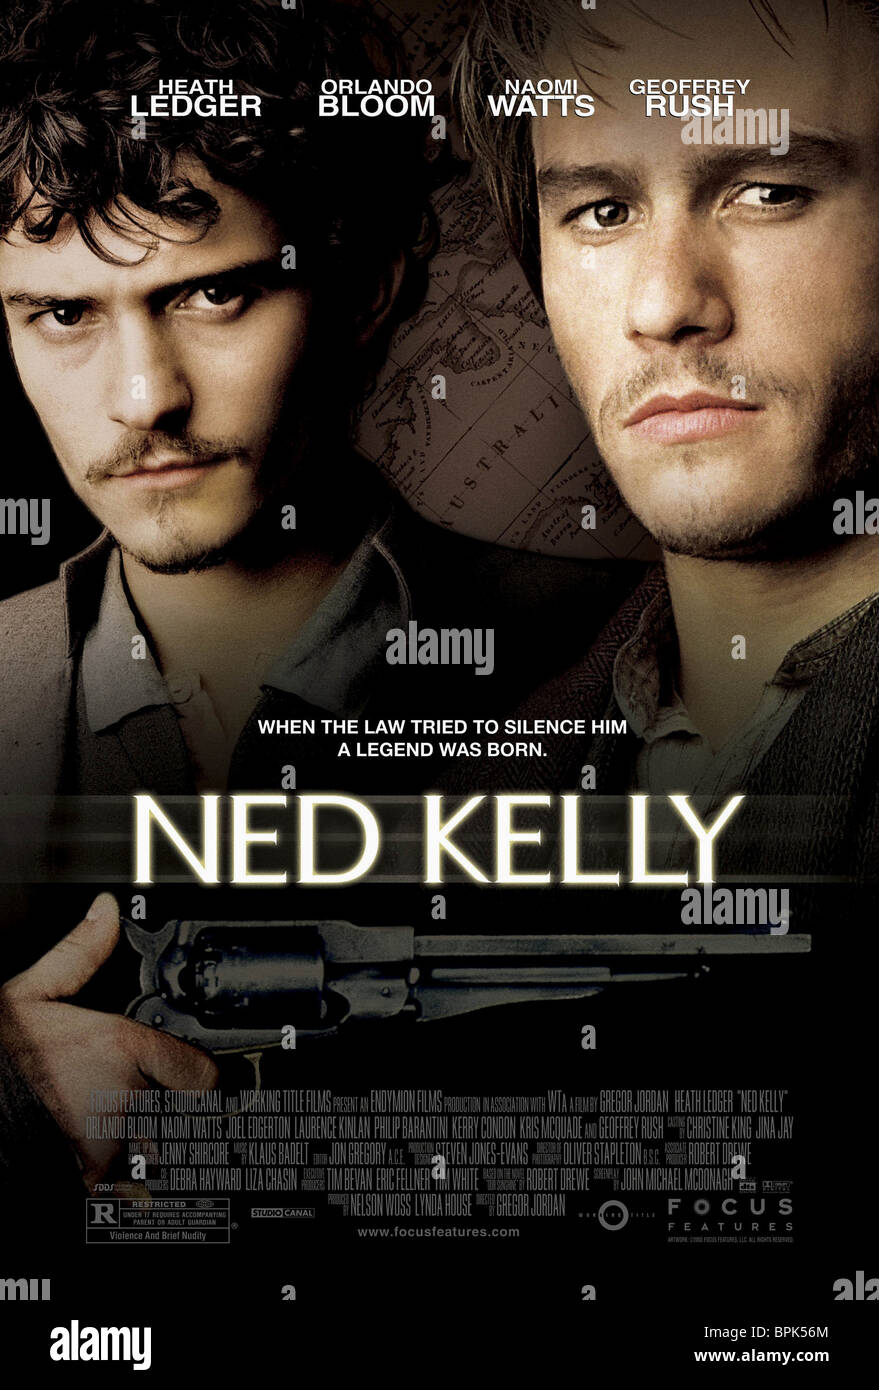 FILM POSTER NED KELLY (2003) - Stock Image